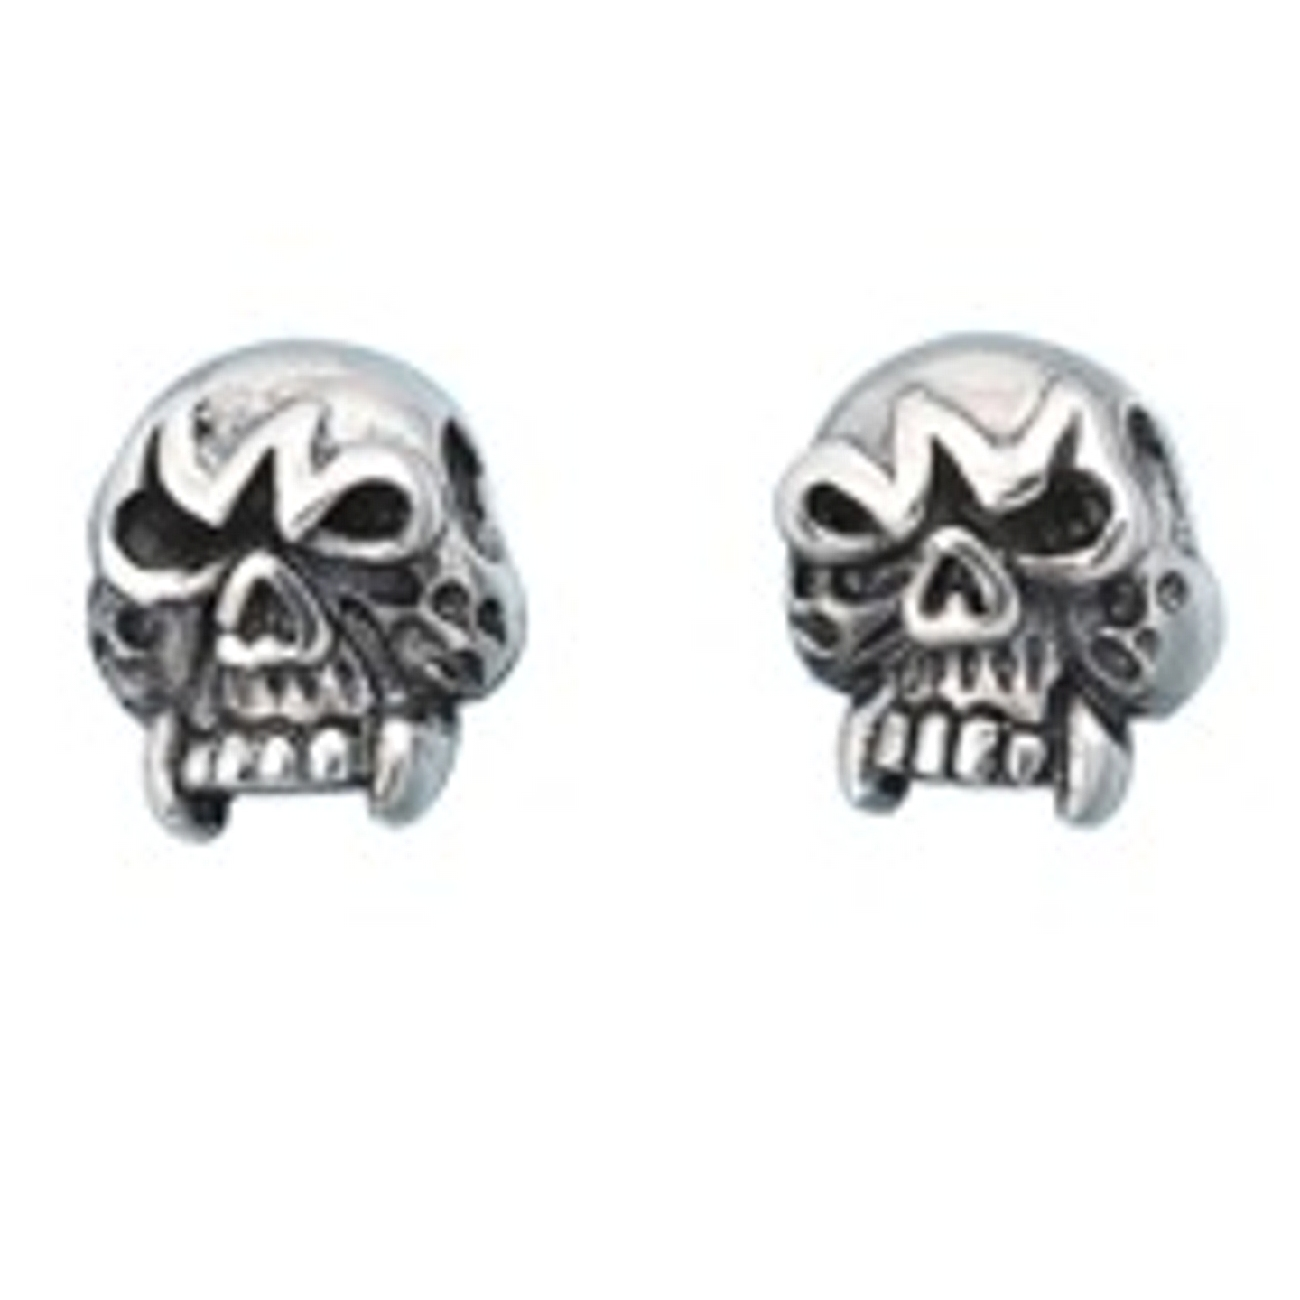 10mm Sterling Silver Upper Skull Face Post Men's Earrings